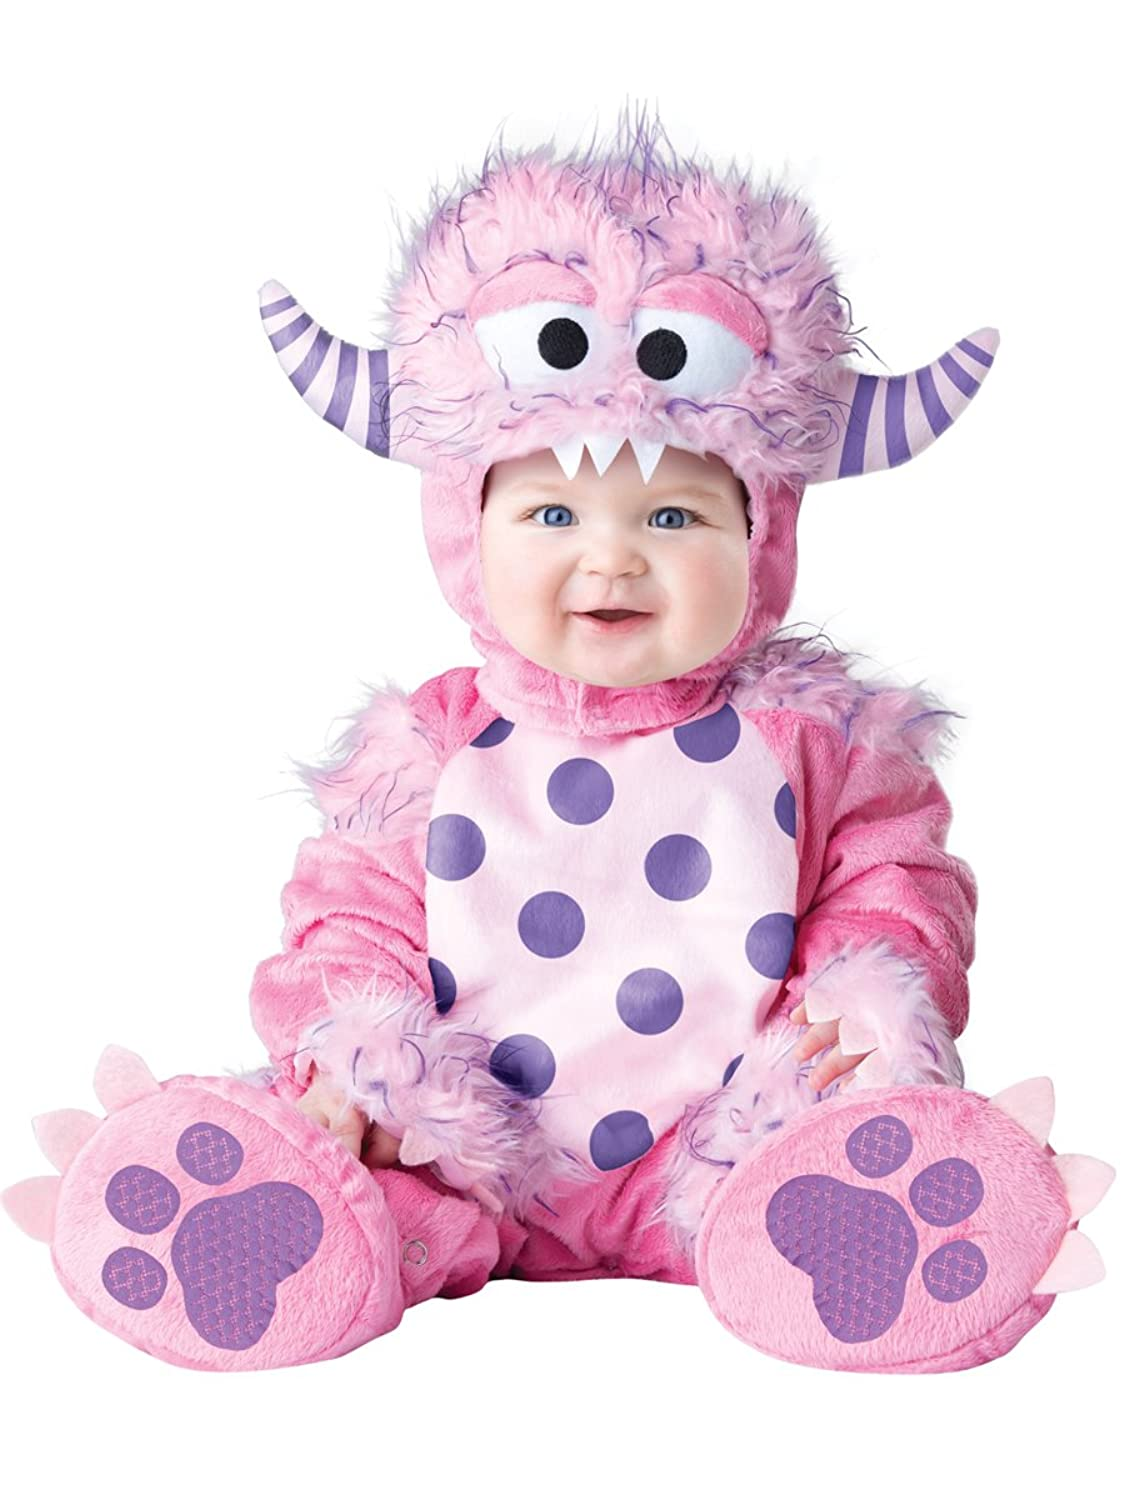 amazoncom incharacter baby girls lil monster costume clothing - Baby Monster Halloween Costumes